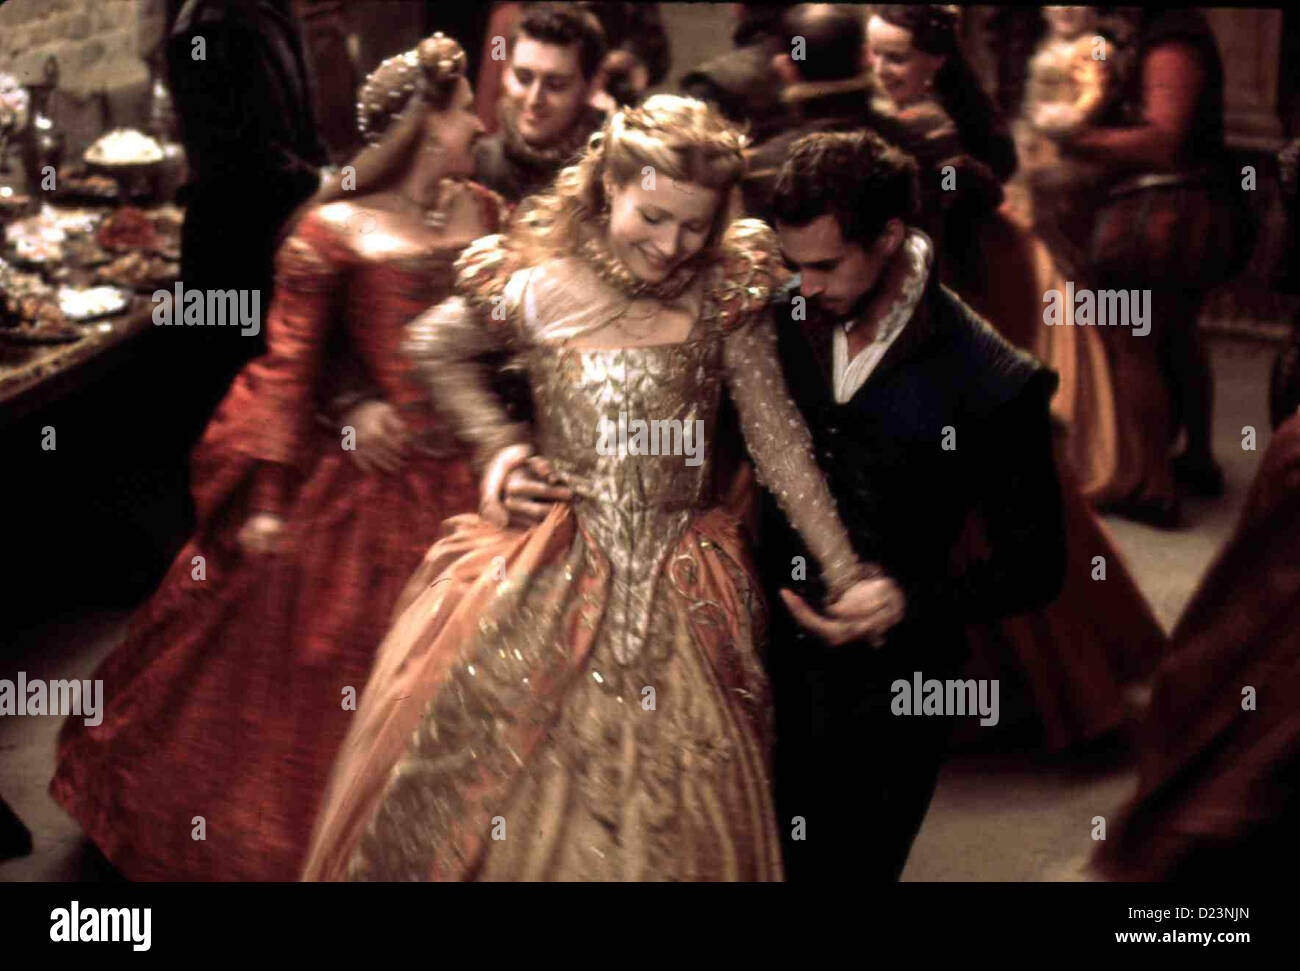 Shakespeare In Love  Shakespeare In Love  Viola De Lesseps (Gwyneth Paltrow), Will shakespeare (Joseph Fiennes) - Stock Image